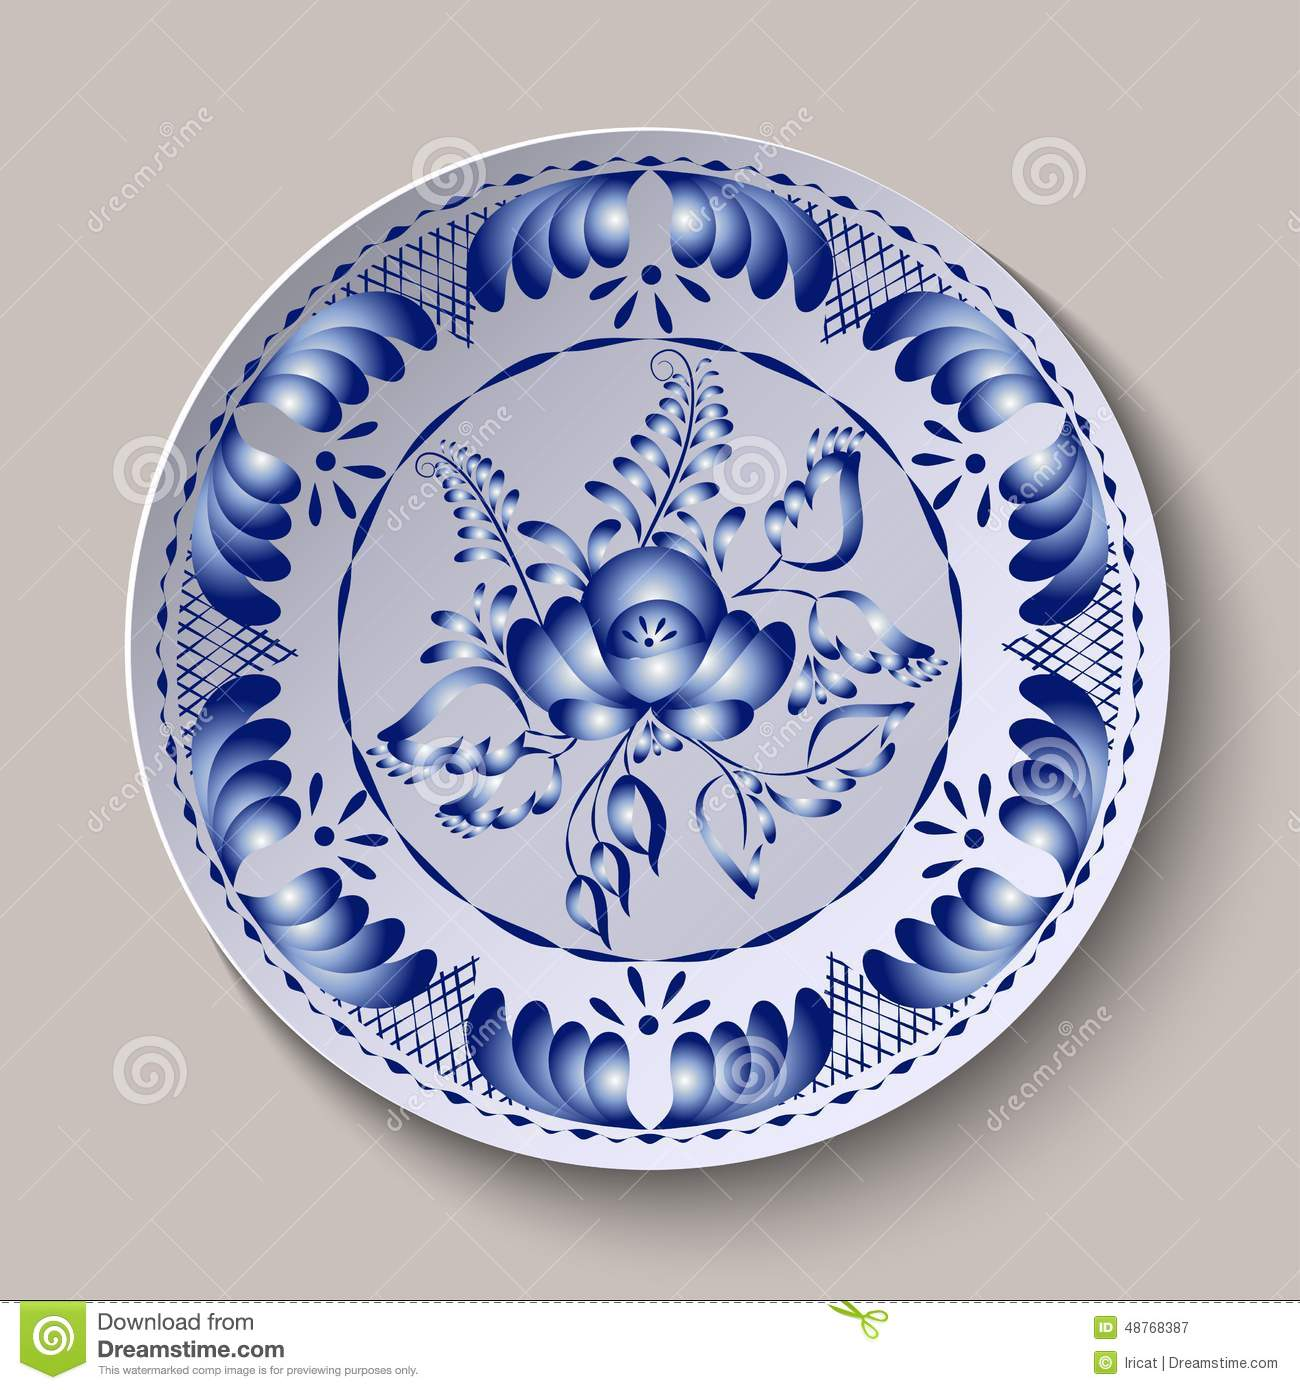 Pattern shown on the ceramic plate.  sc 1 st  Dreamstime.com & Round Floral Ornament Gzhel Style. Pattern Shown On The Ceramic ...